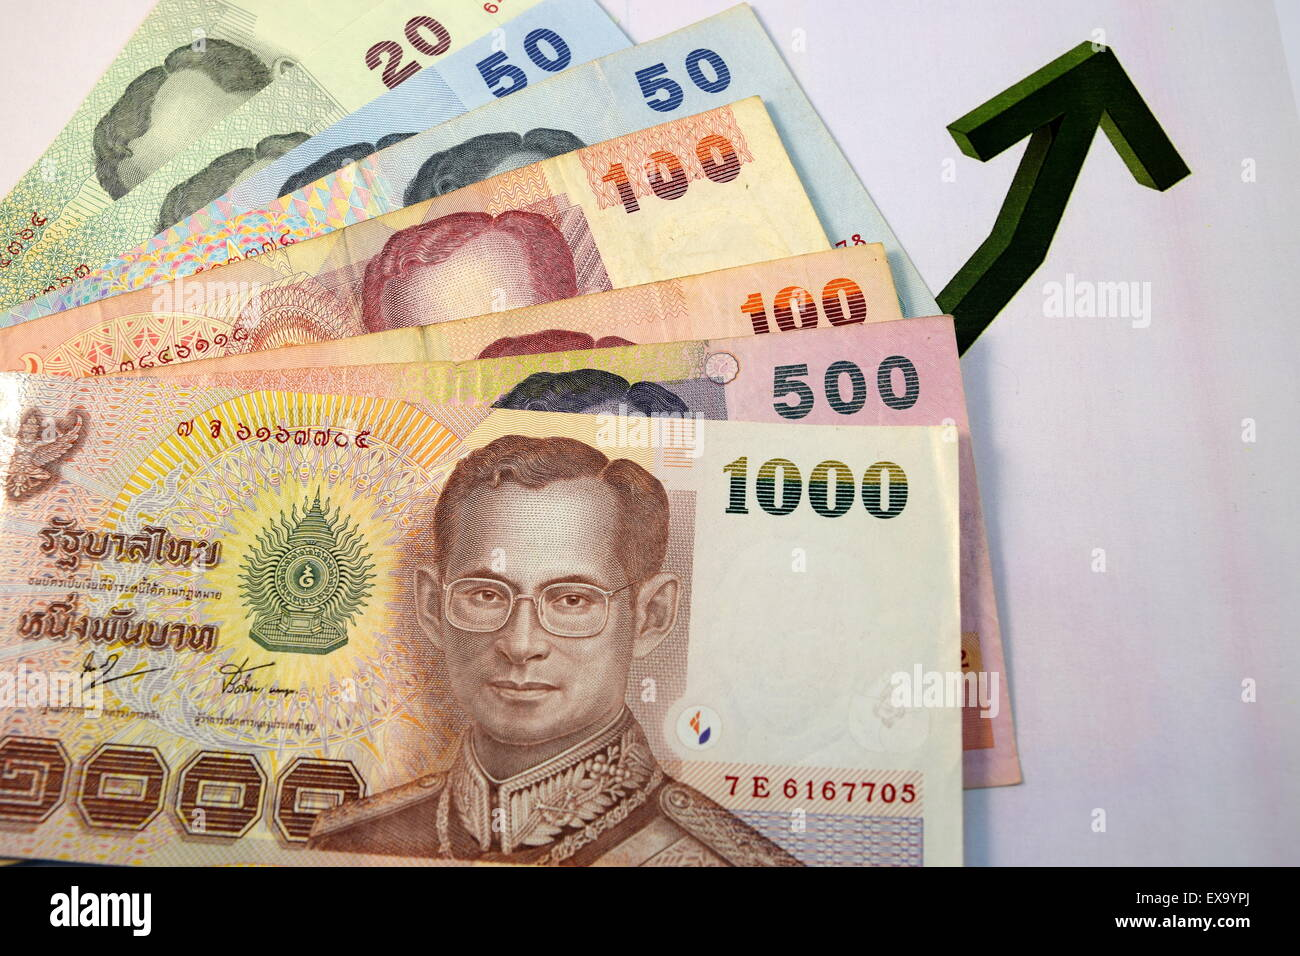 close up of various currency notes and coins from